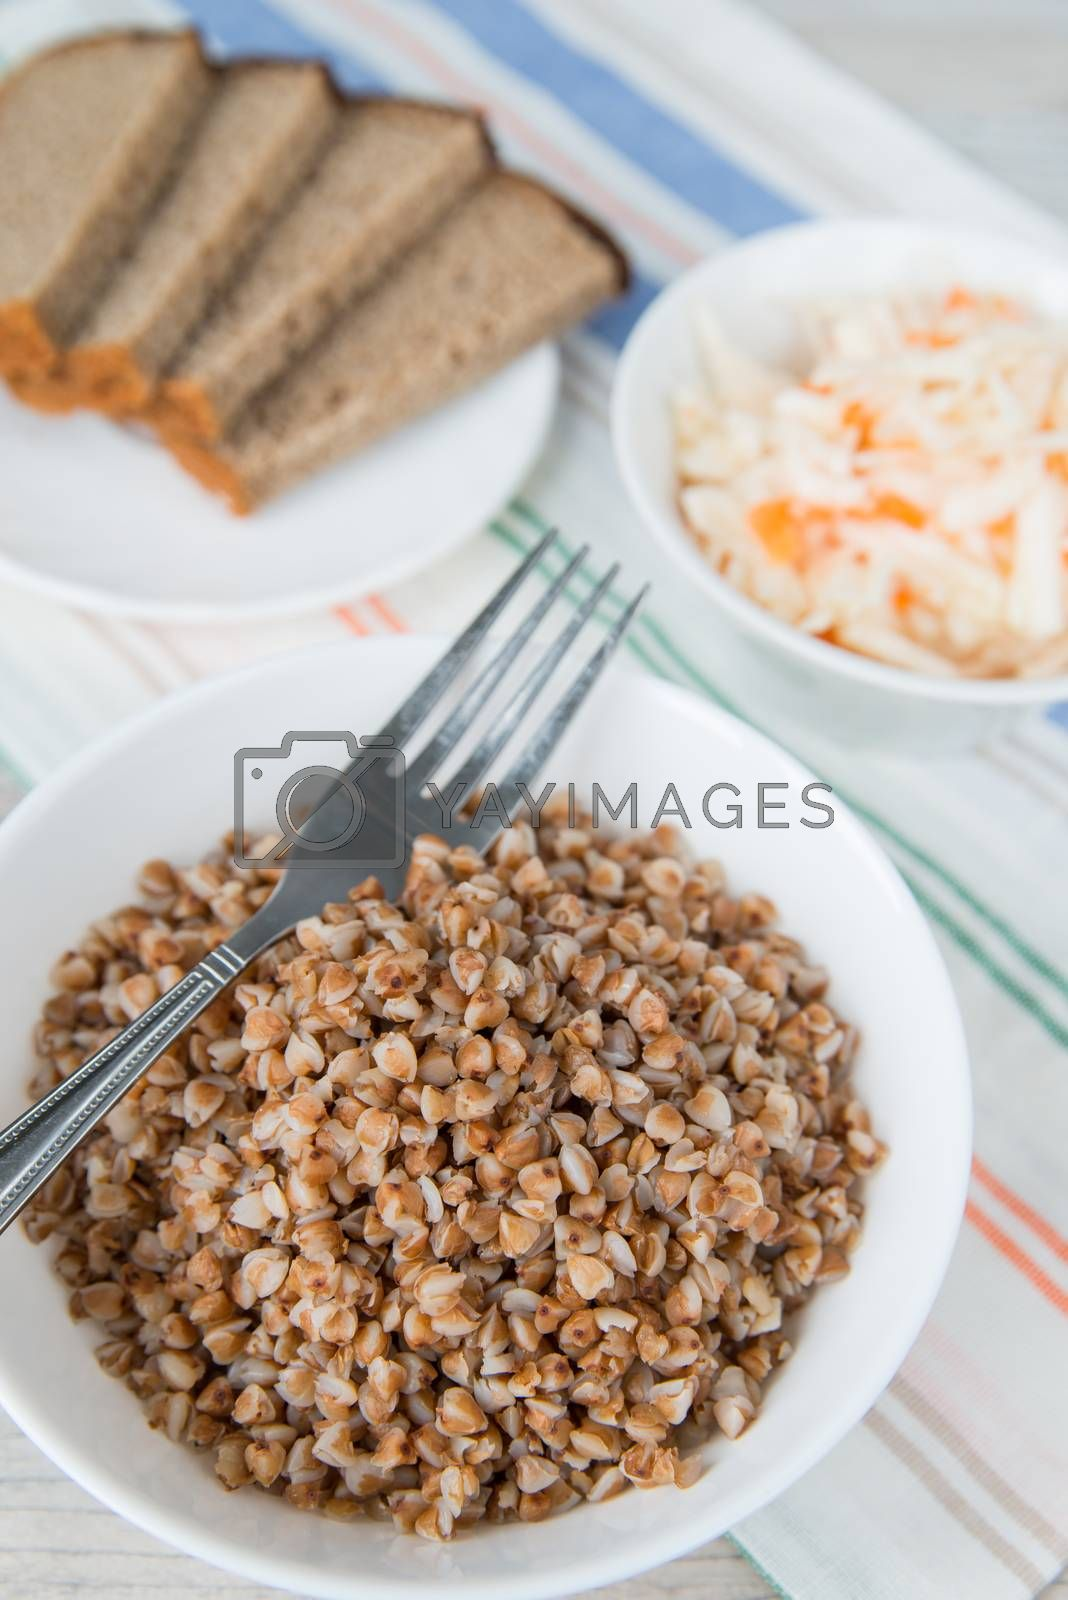 Royalty free image of Dinner with the buckwheat cereals by Linaga